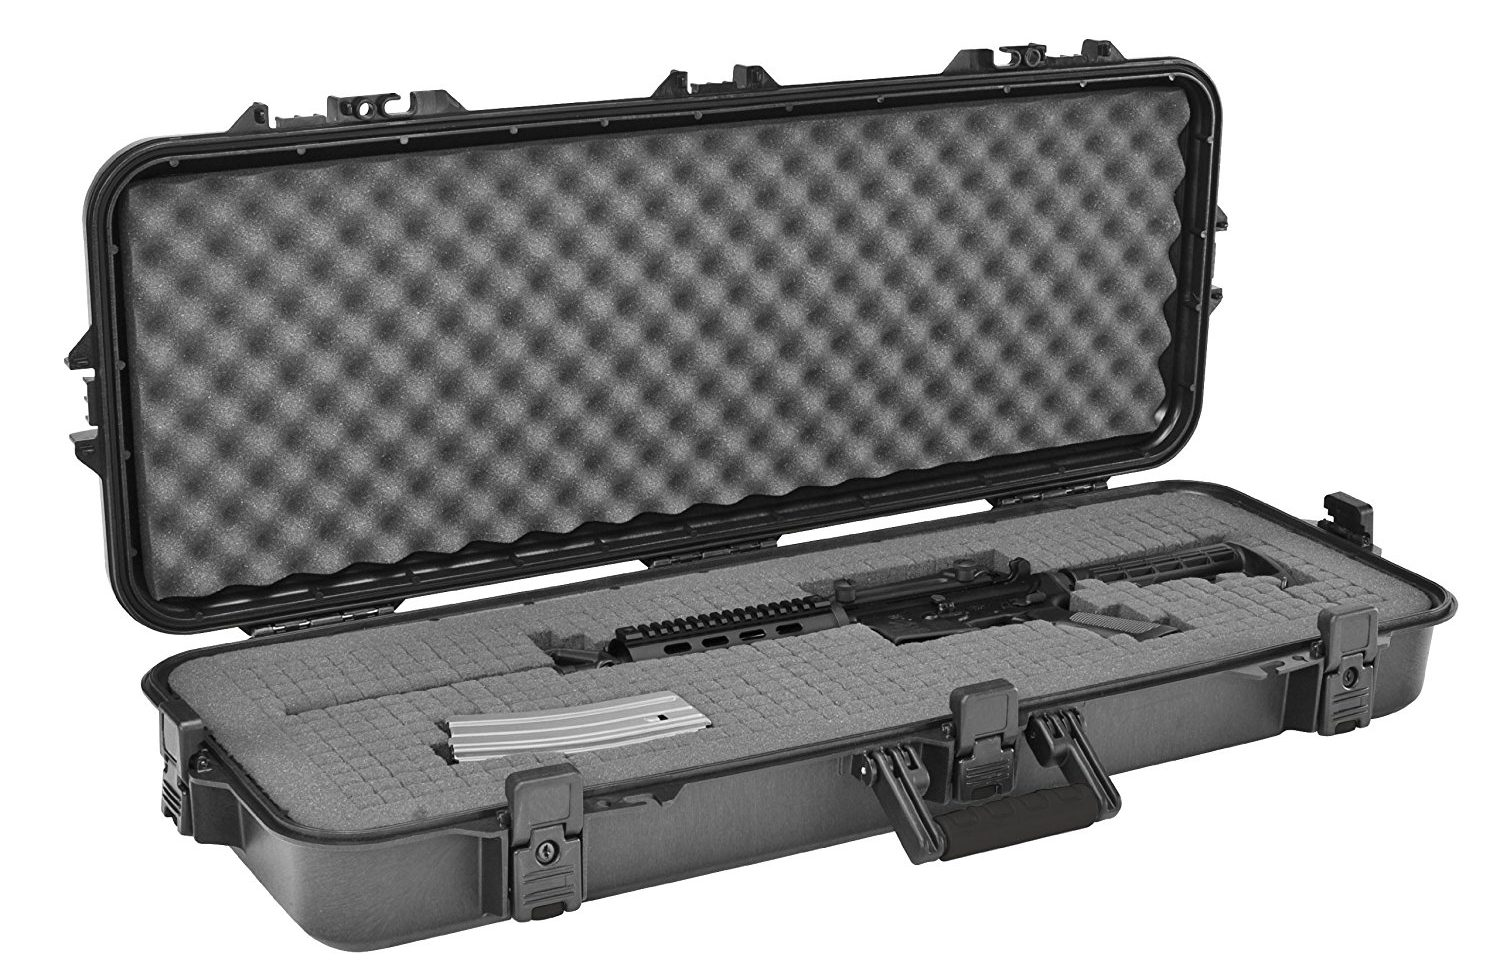 Image of a hard rifle case